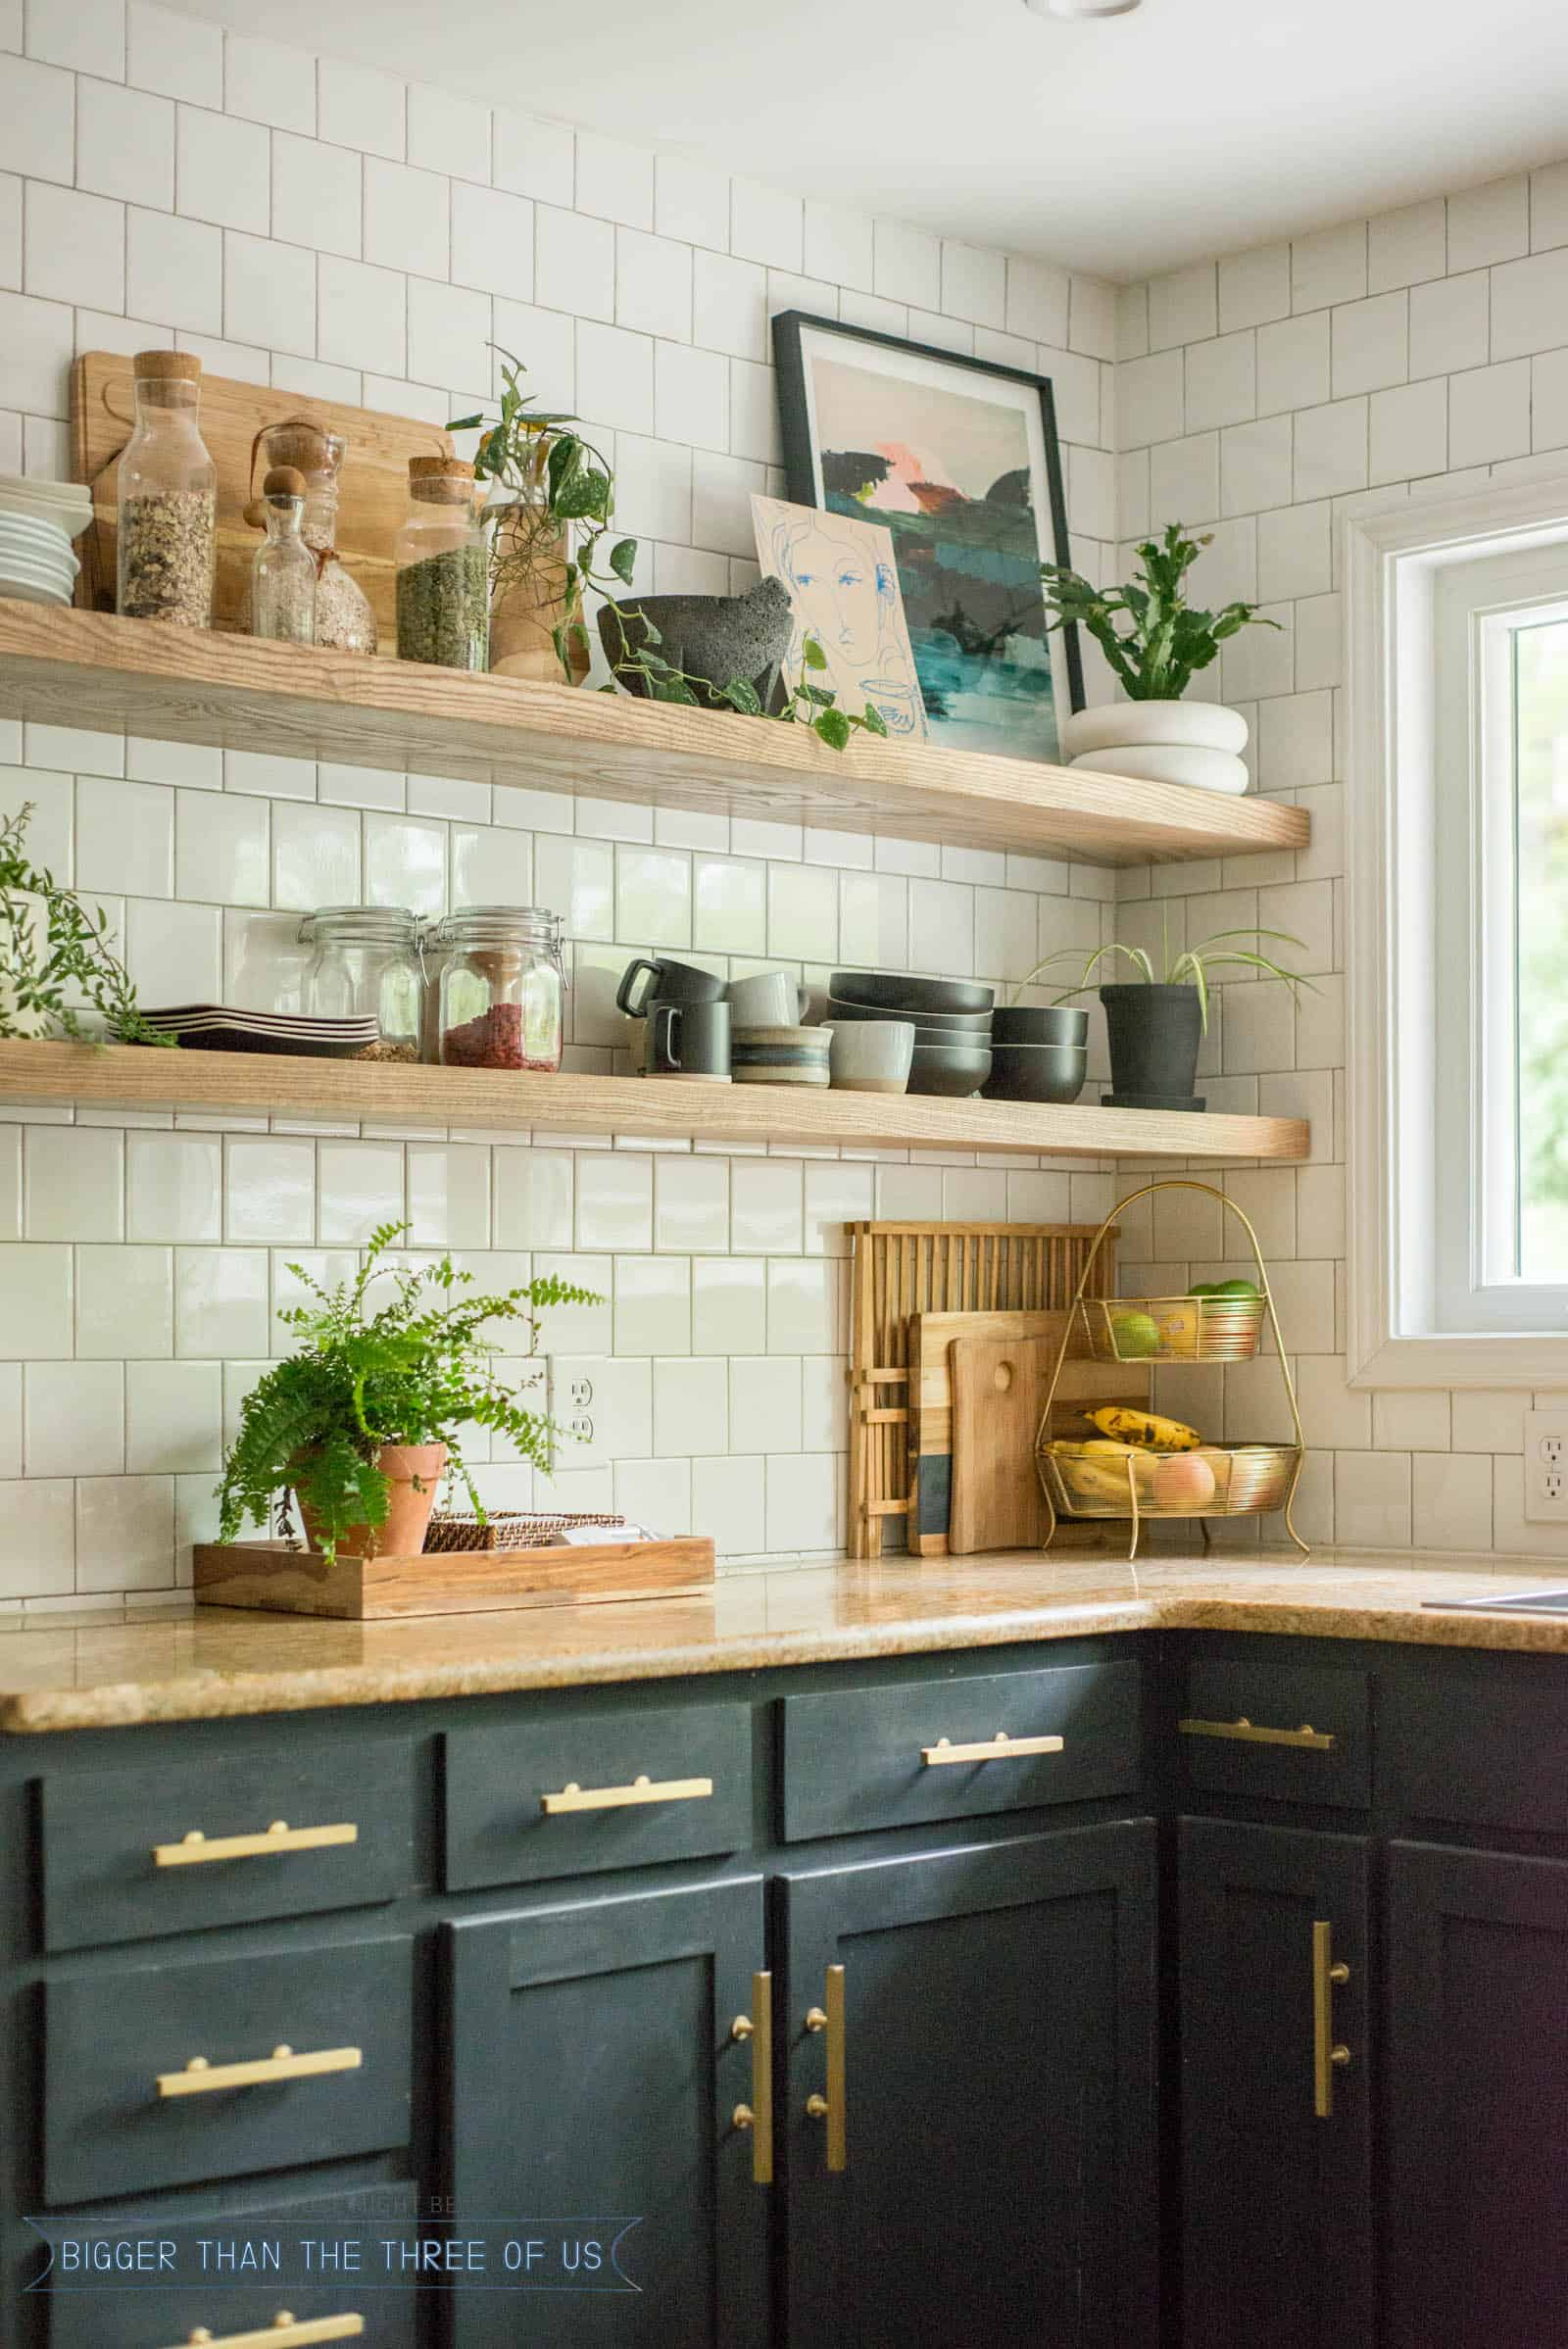 diy open shelving kitchen guide bigger than the three floating shelves that hold lot weight wood headboard screws design own closet ikea cube storage boxes shelf mounting brackets